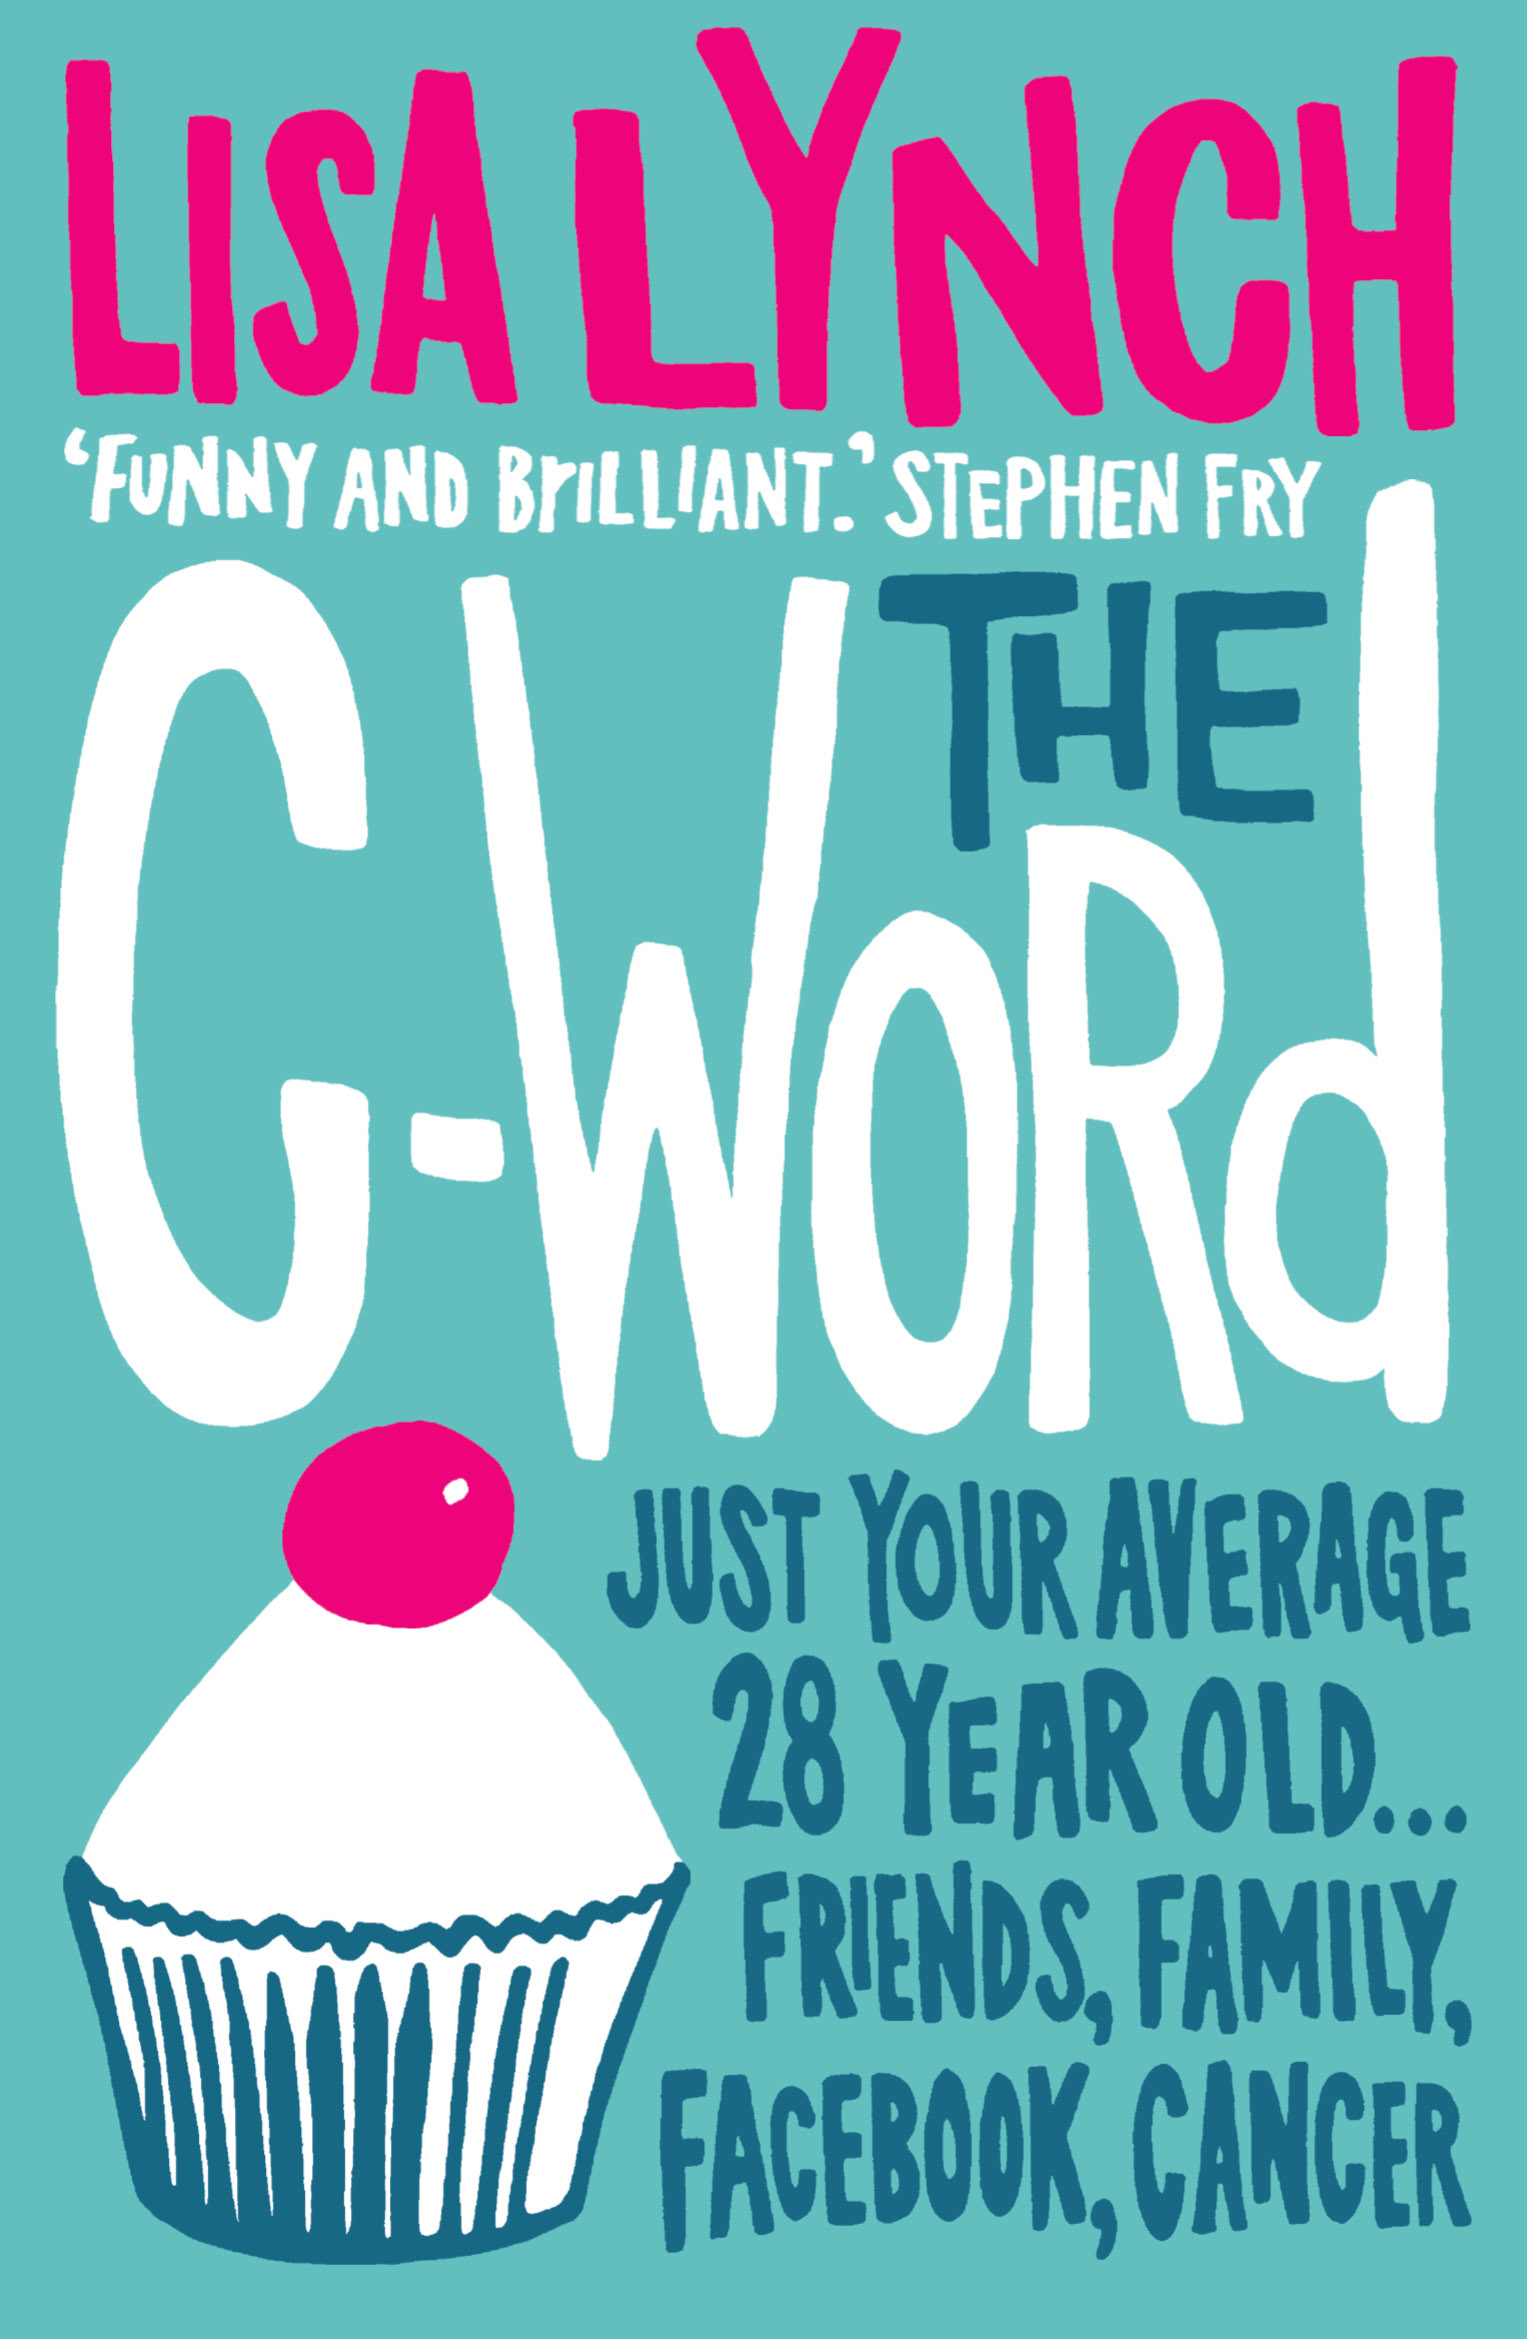 The C-Word By: Lisa Lynch